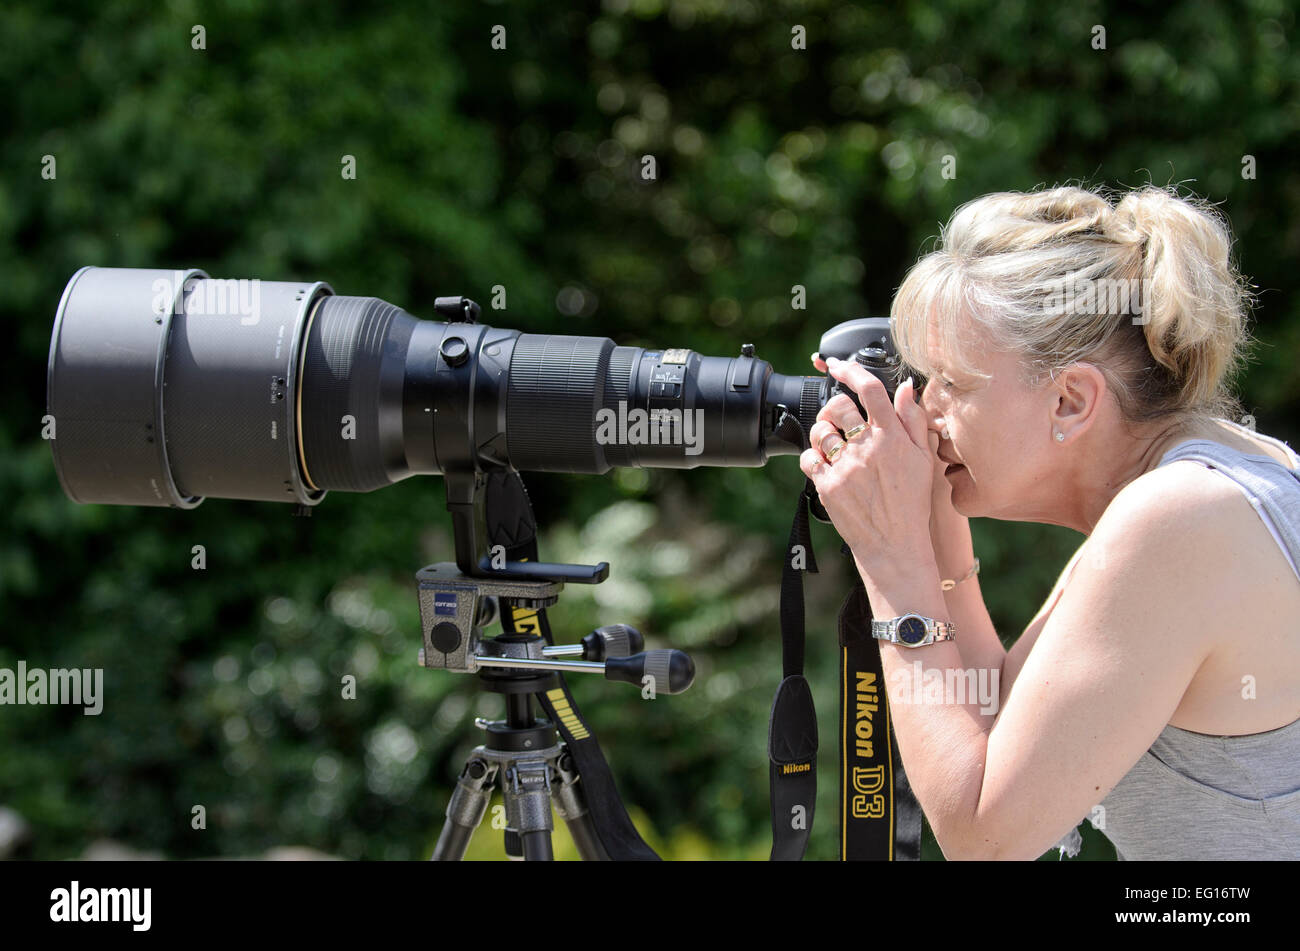 woman using a 600 mm telephoto lens on a Nikon D3 release available - Stock Image